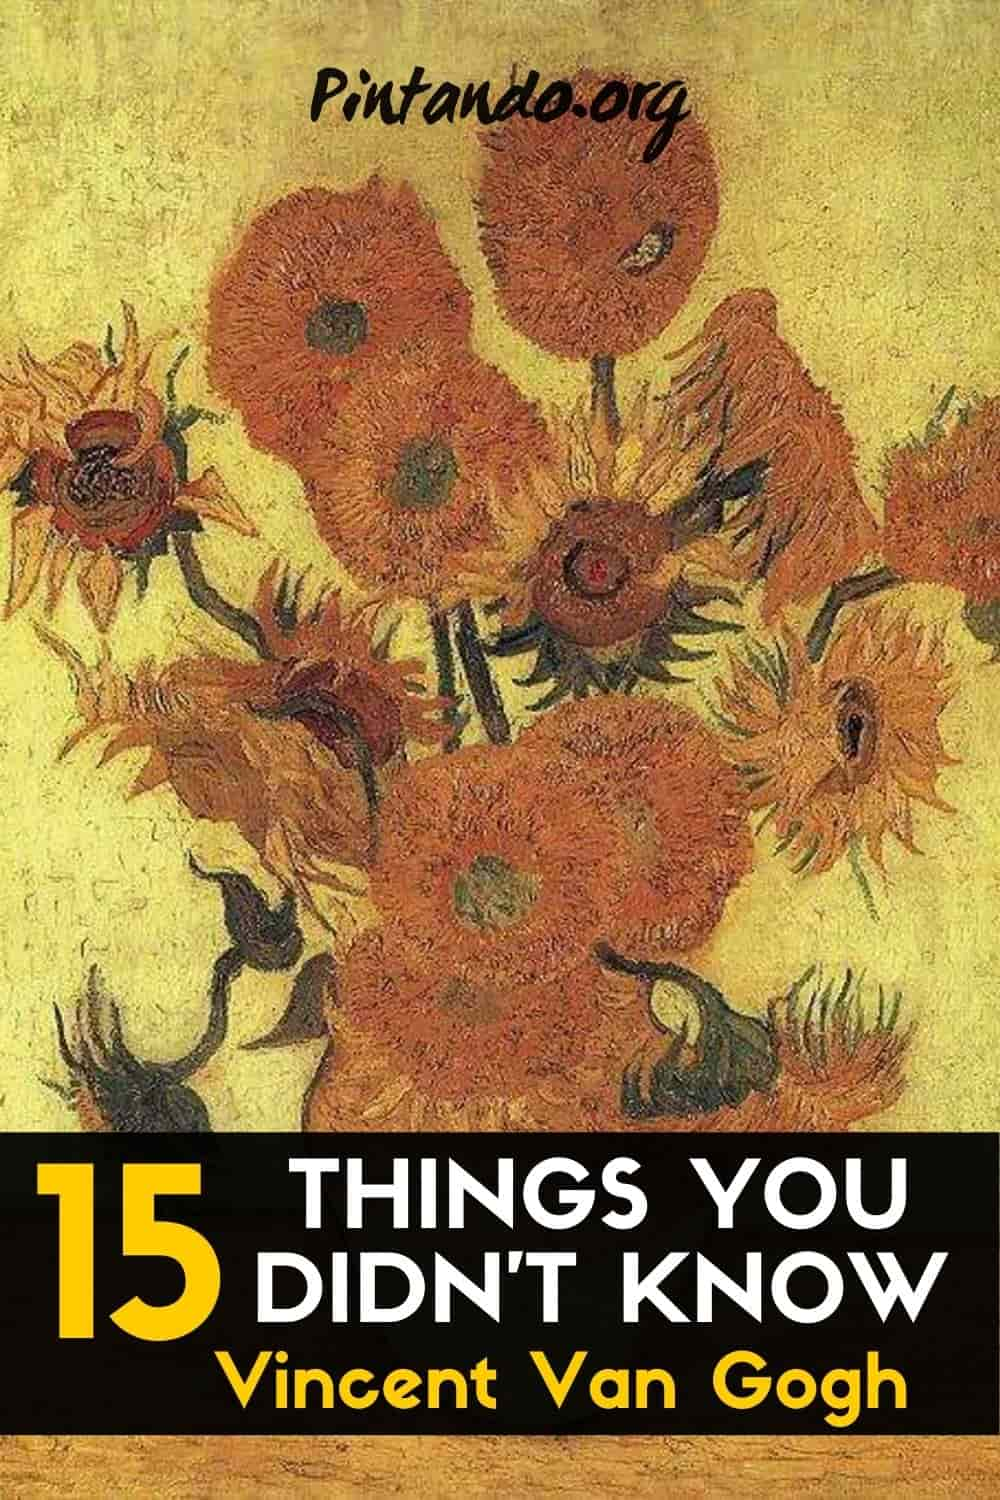 15 Things You Didn't Know About Vincent Van Gogh (1)-min